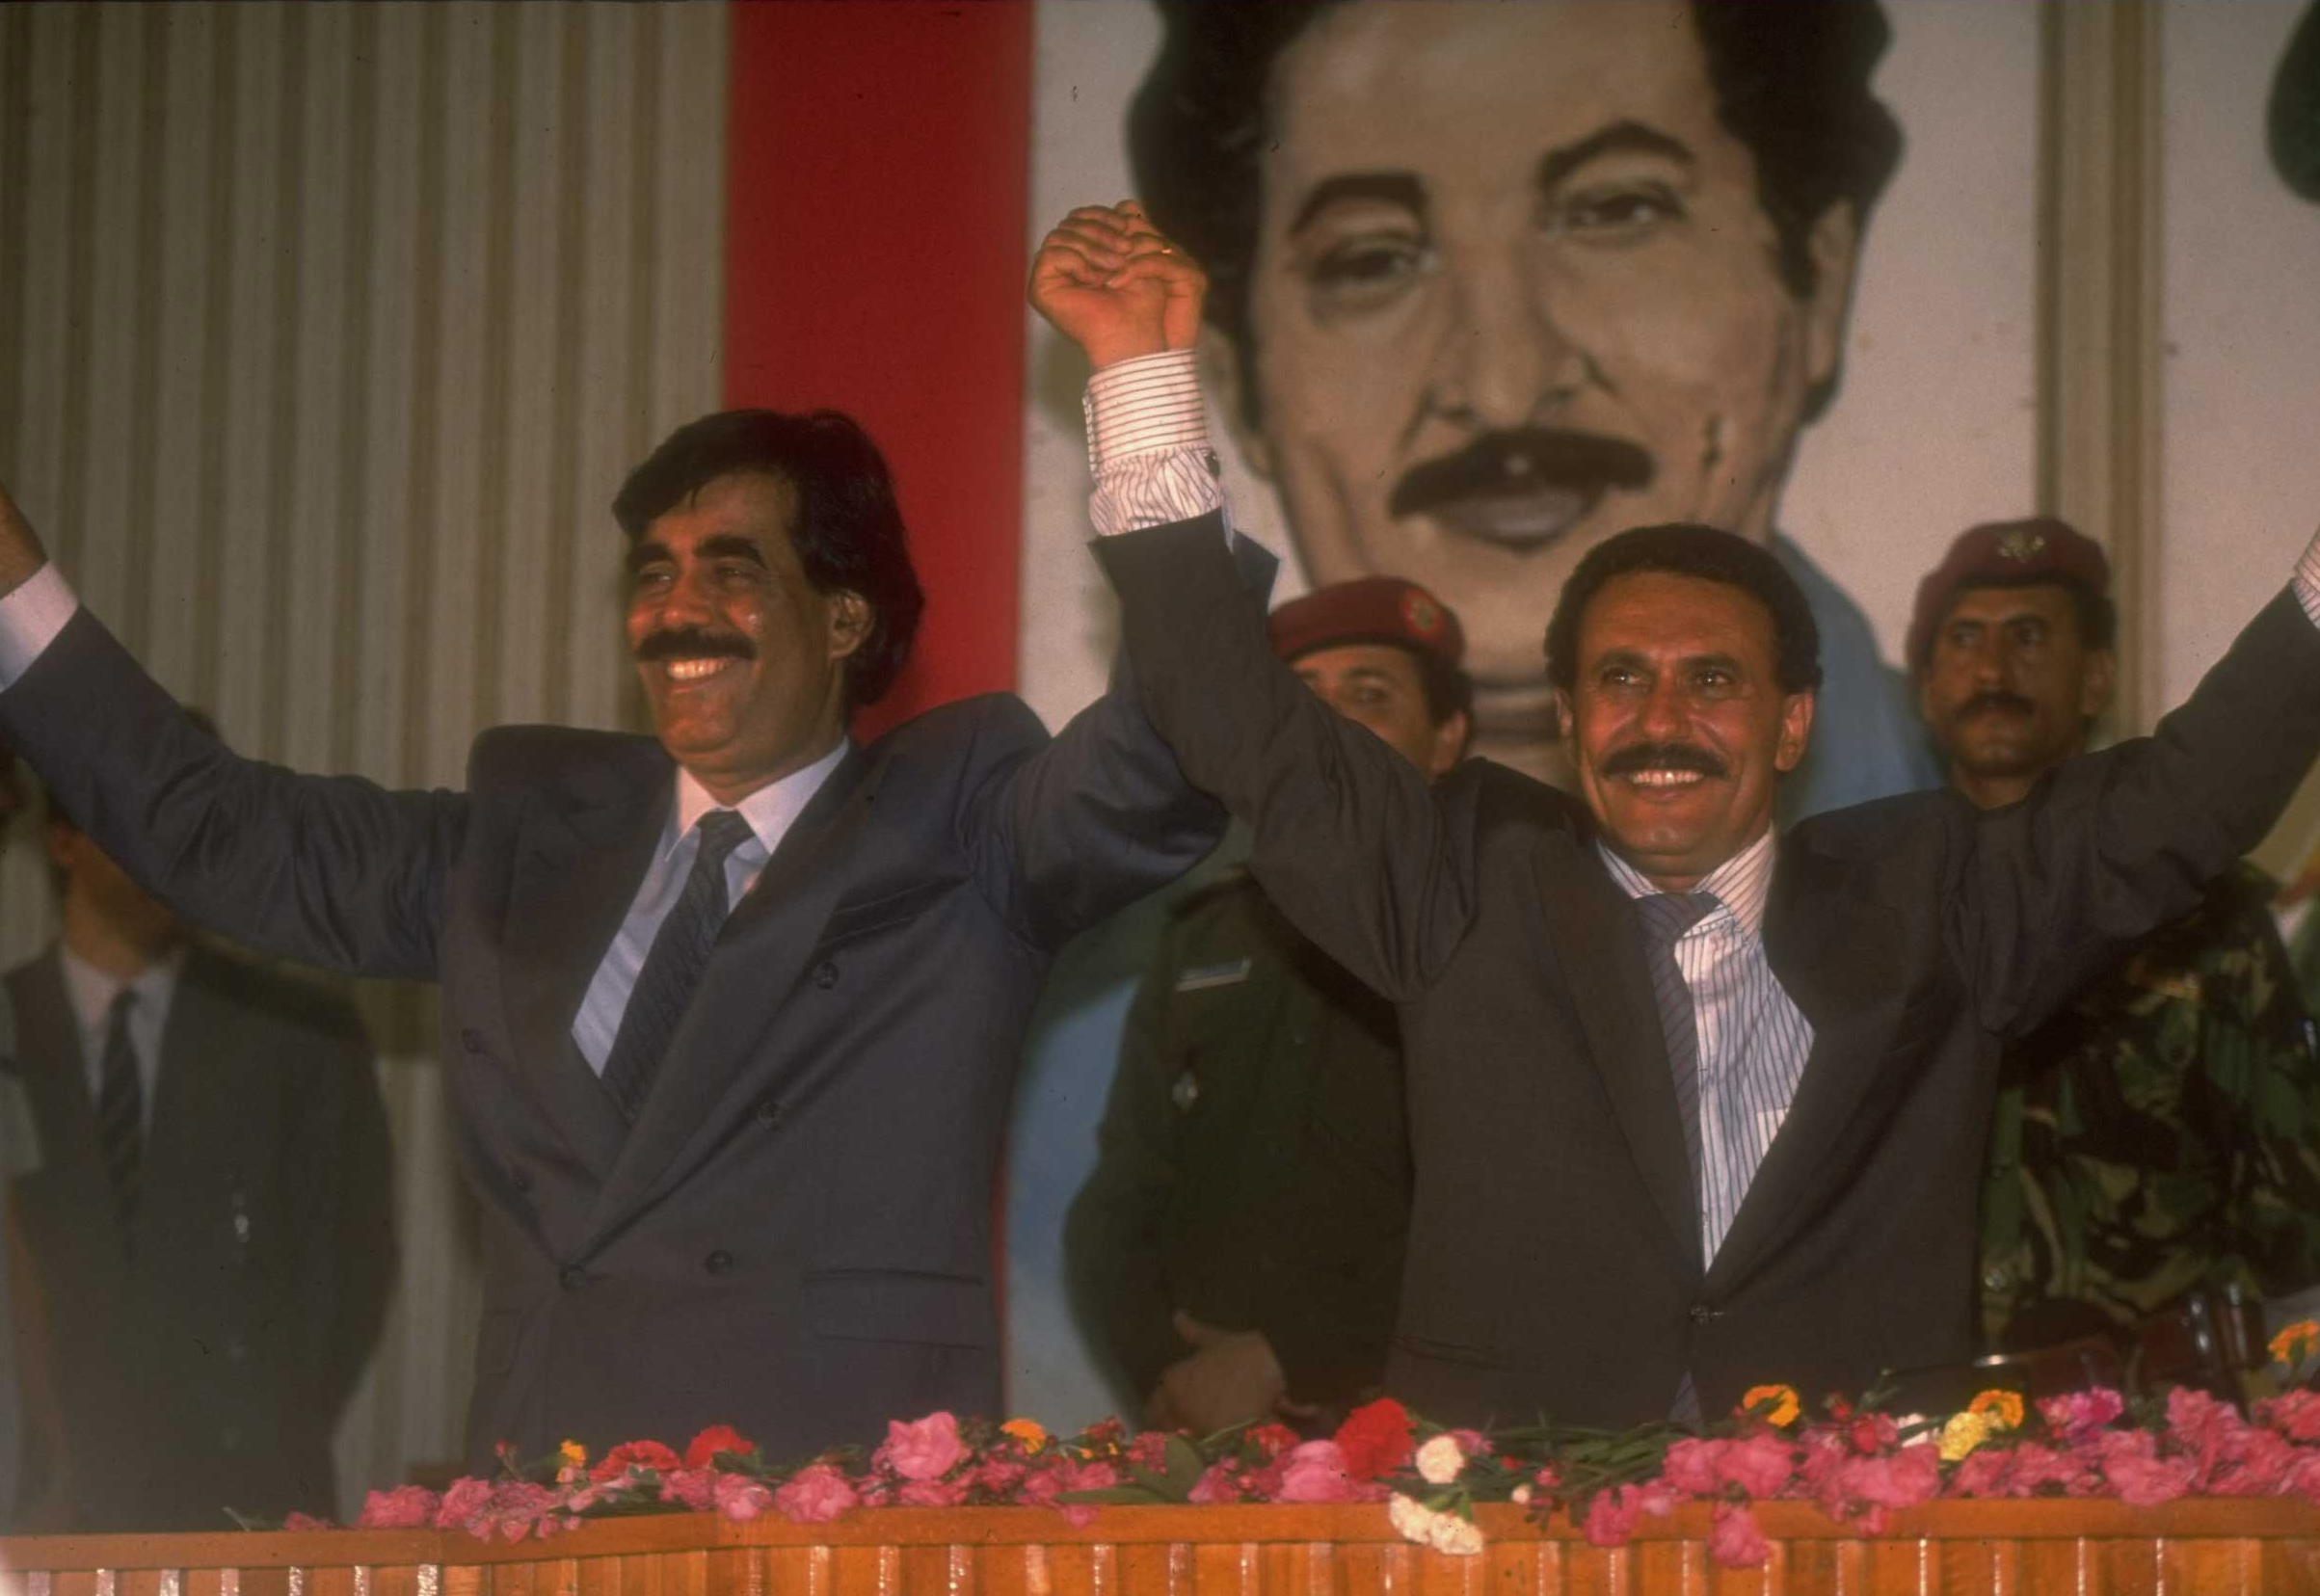 North and South Yemen finally overcame internal turmoil and occasional border clashes to agree on a unity deal in 1989. The merger the following year established the Republic of Yemen under the North's President Ali Abdullah Saleh (right), who would remain in power until 2012 .